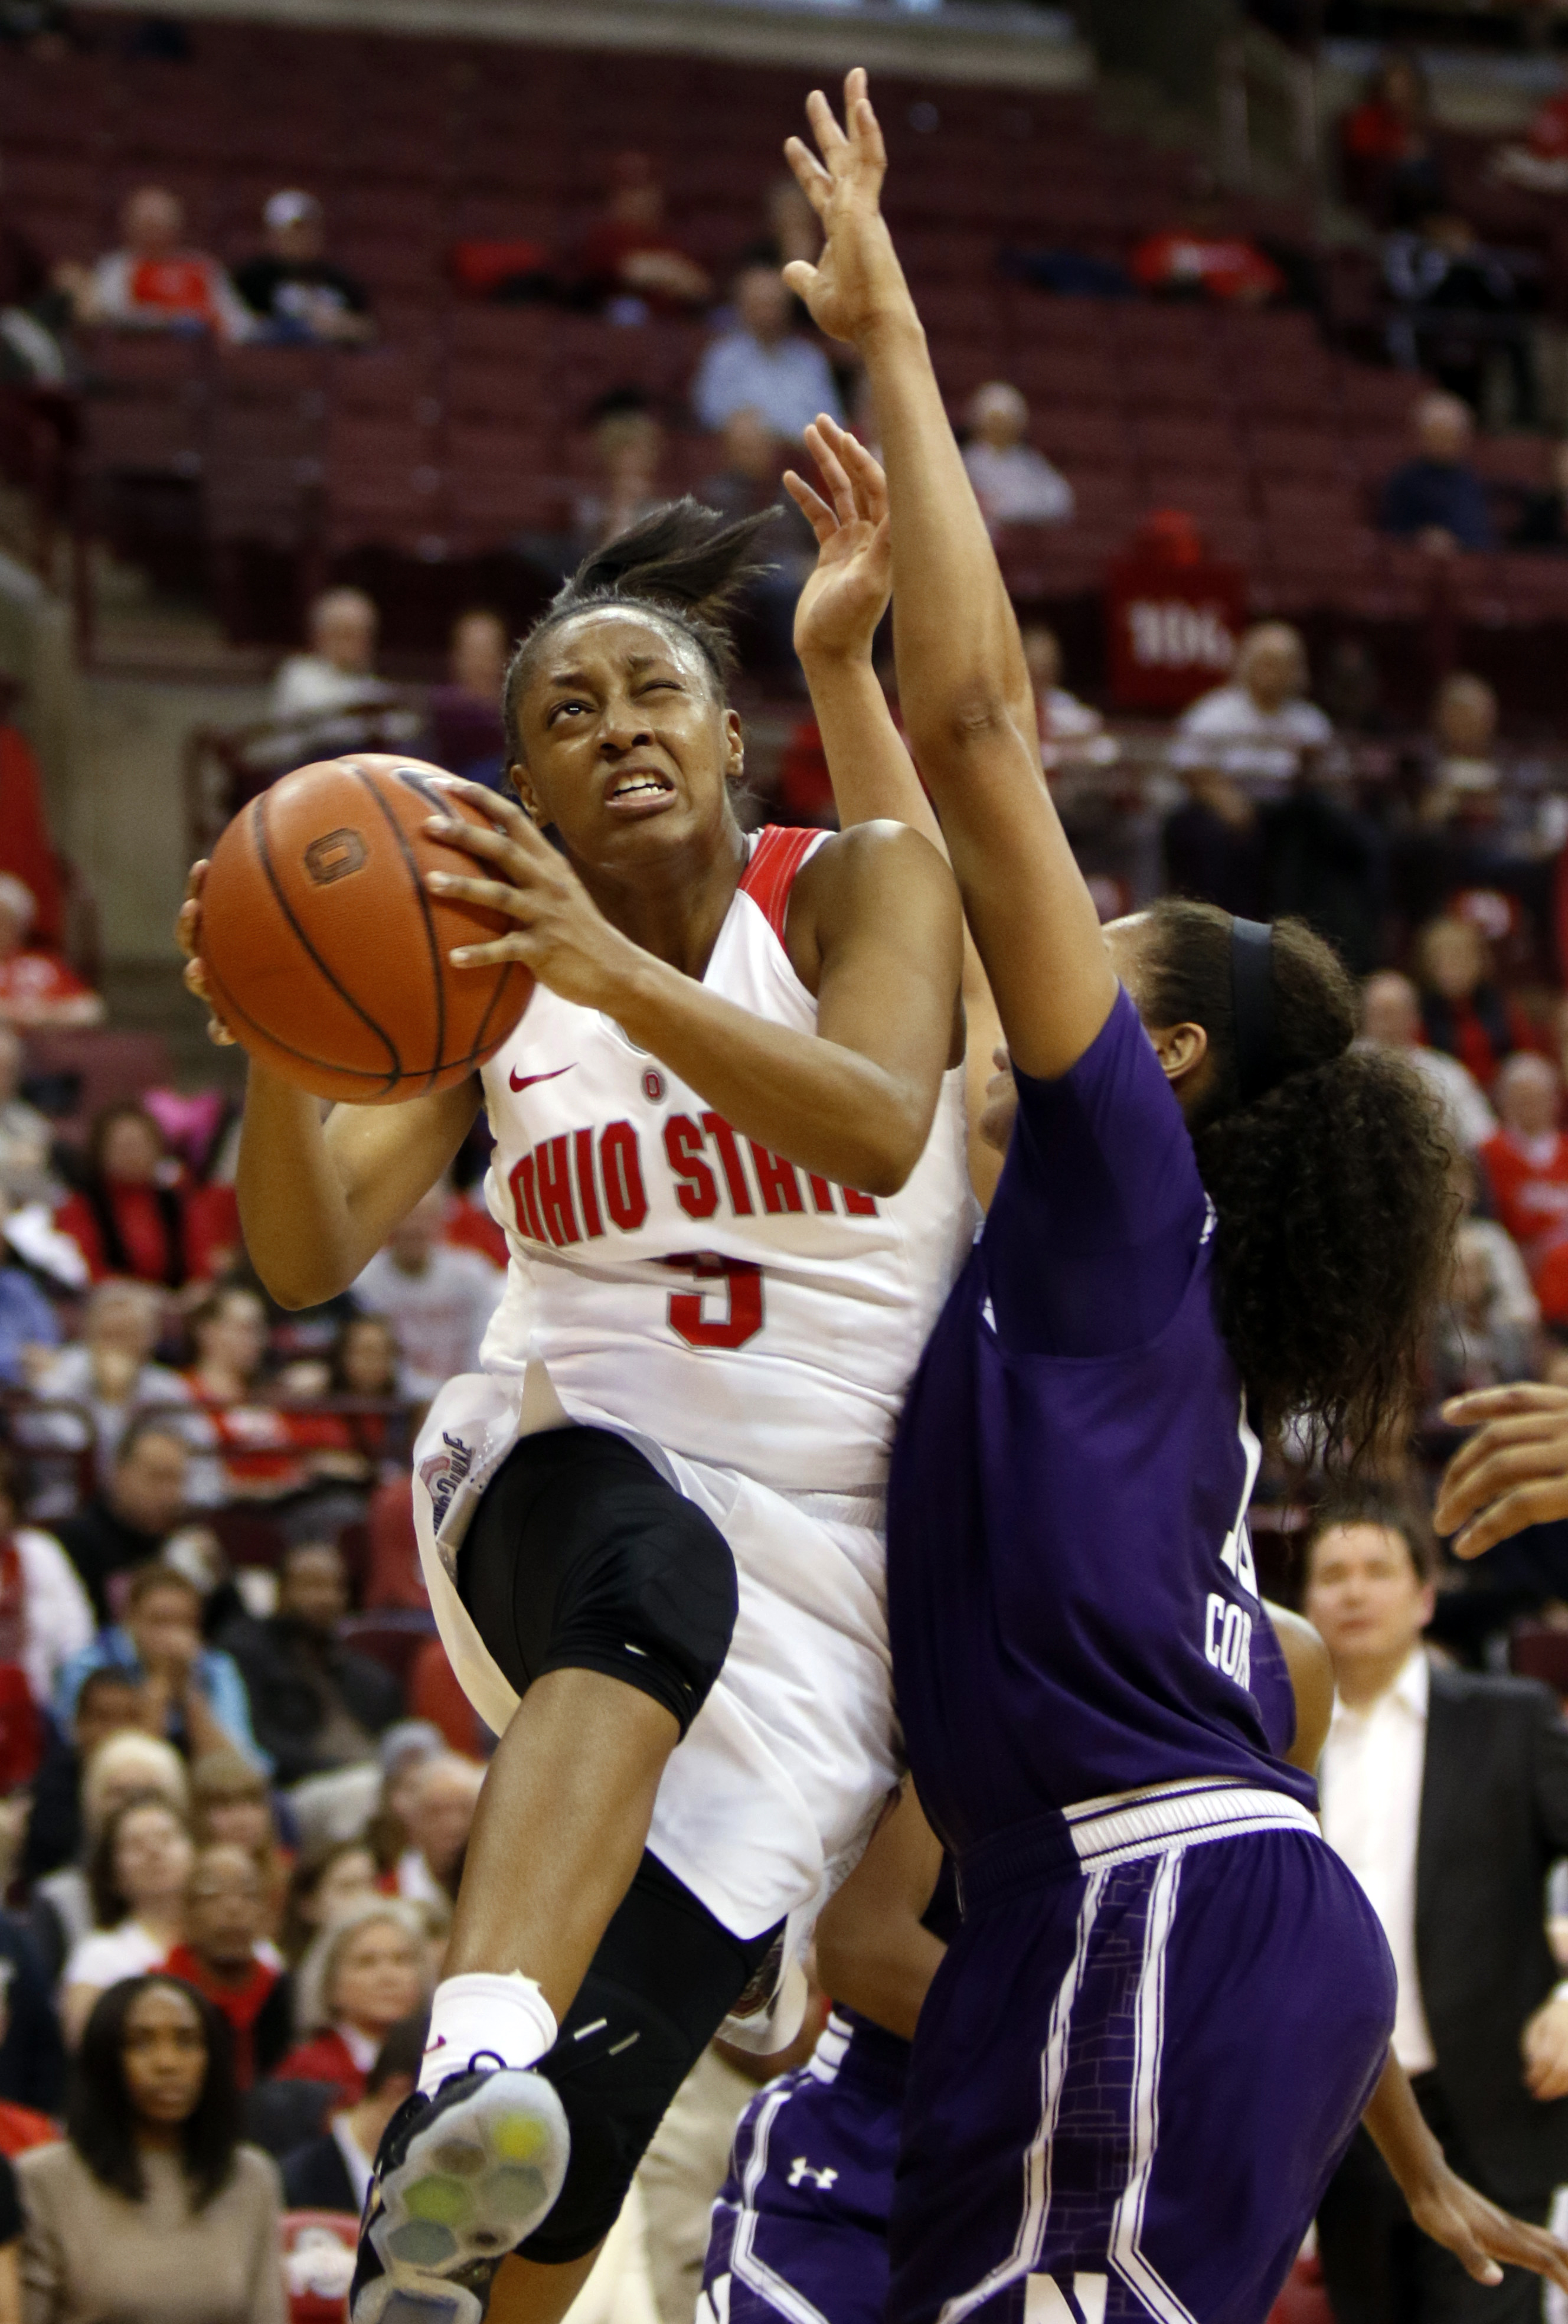 Ohio State's Kelsey Mitchell, left, goes up to shoot against Northwestern's Nia Coffey during the second half of an NCAA college basketball game in Columbus, Ohio, Thursday, Jan. 28, 2016. Ohio State won 76-73. (AP Photo/Paul Vernon)